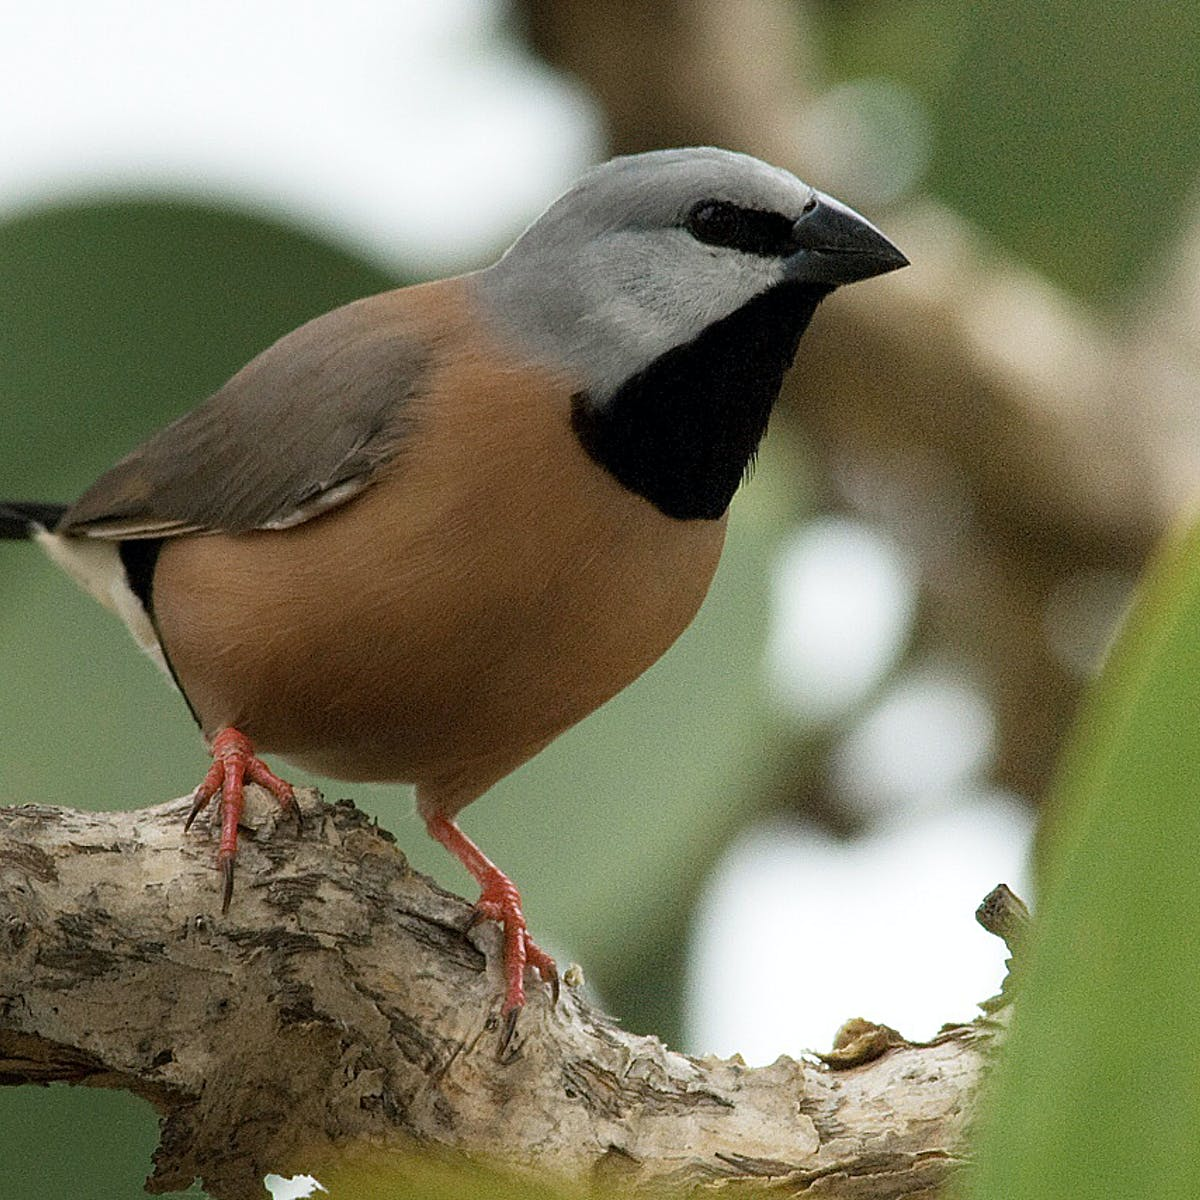 Adani's finch plan is approved, just weeks after being sent